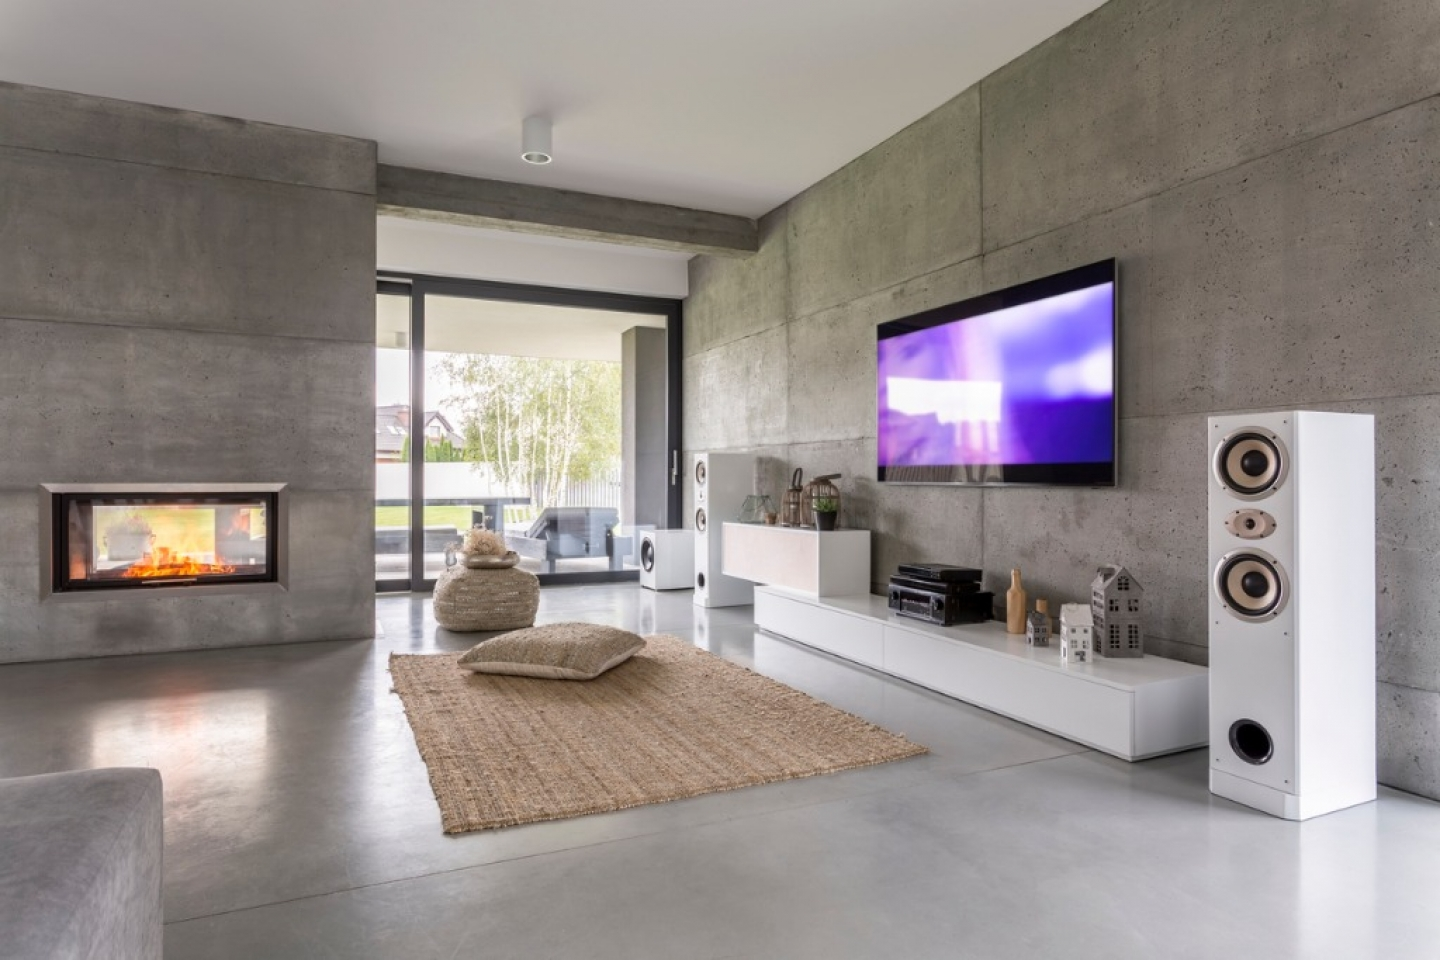 tv-living-room-with-window-picture-id637